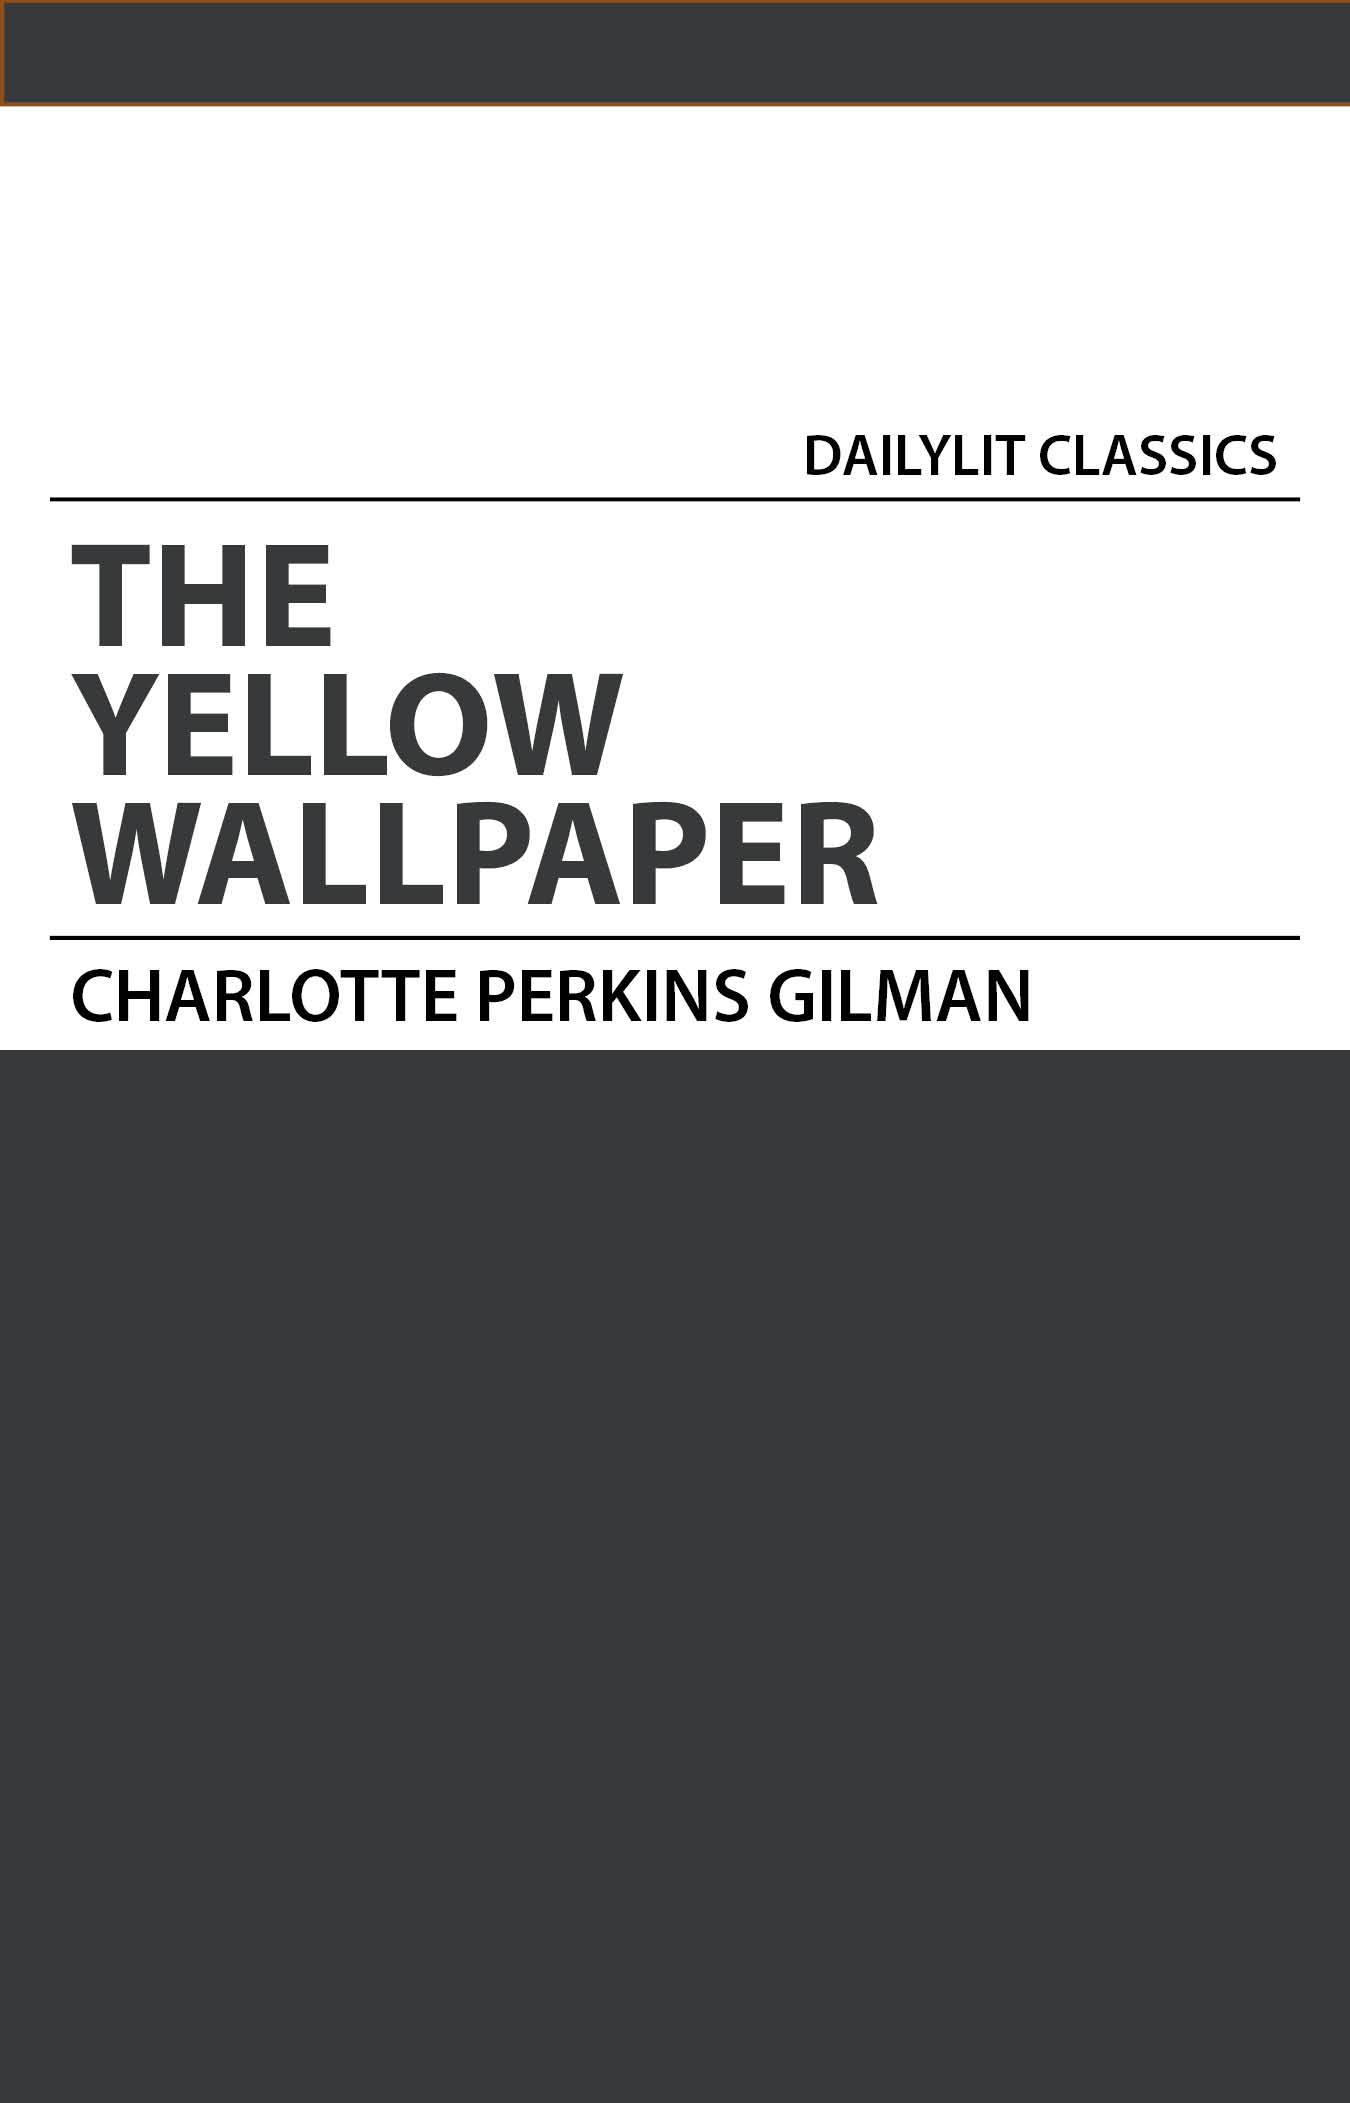 a child of madness in the yellow wallpaper by charlotte perkins gilman The yellow wallpaper is a short story by charlotte perkins gilman depicting a 19th century family the author, who speaks in the first person, shares a re.